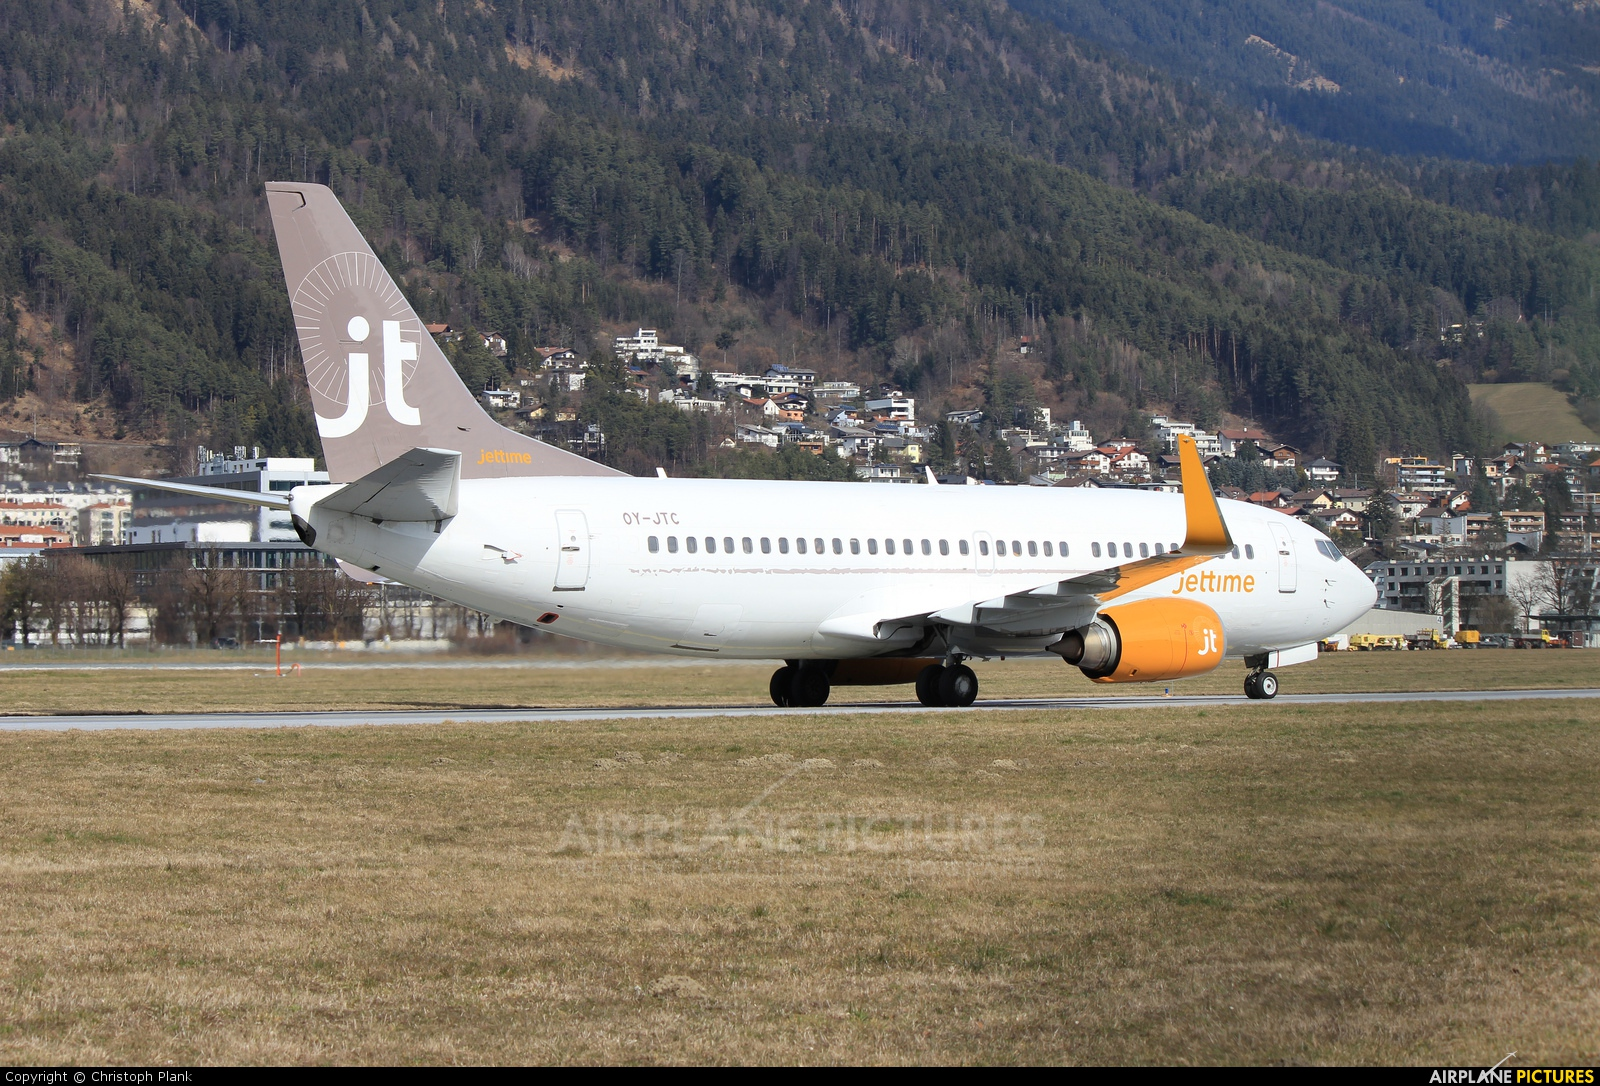 Jet Time OY-JTC aircraft at Innsbruck